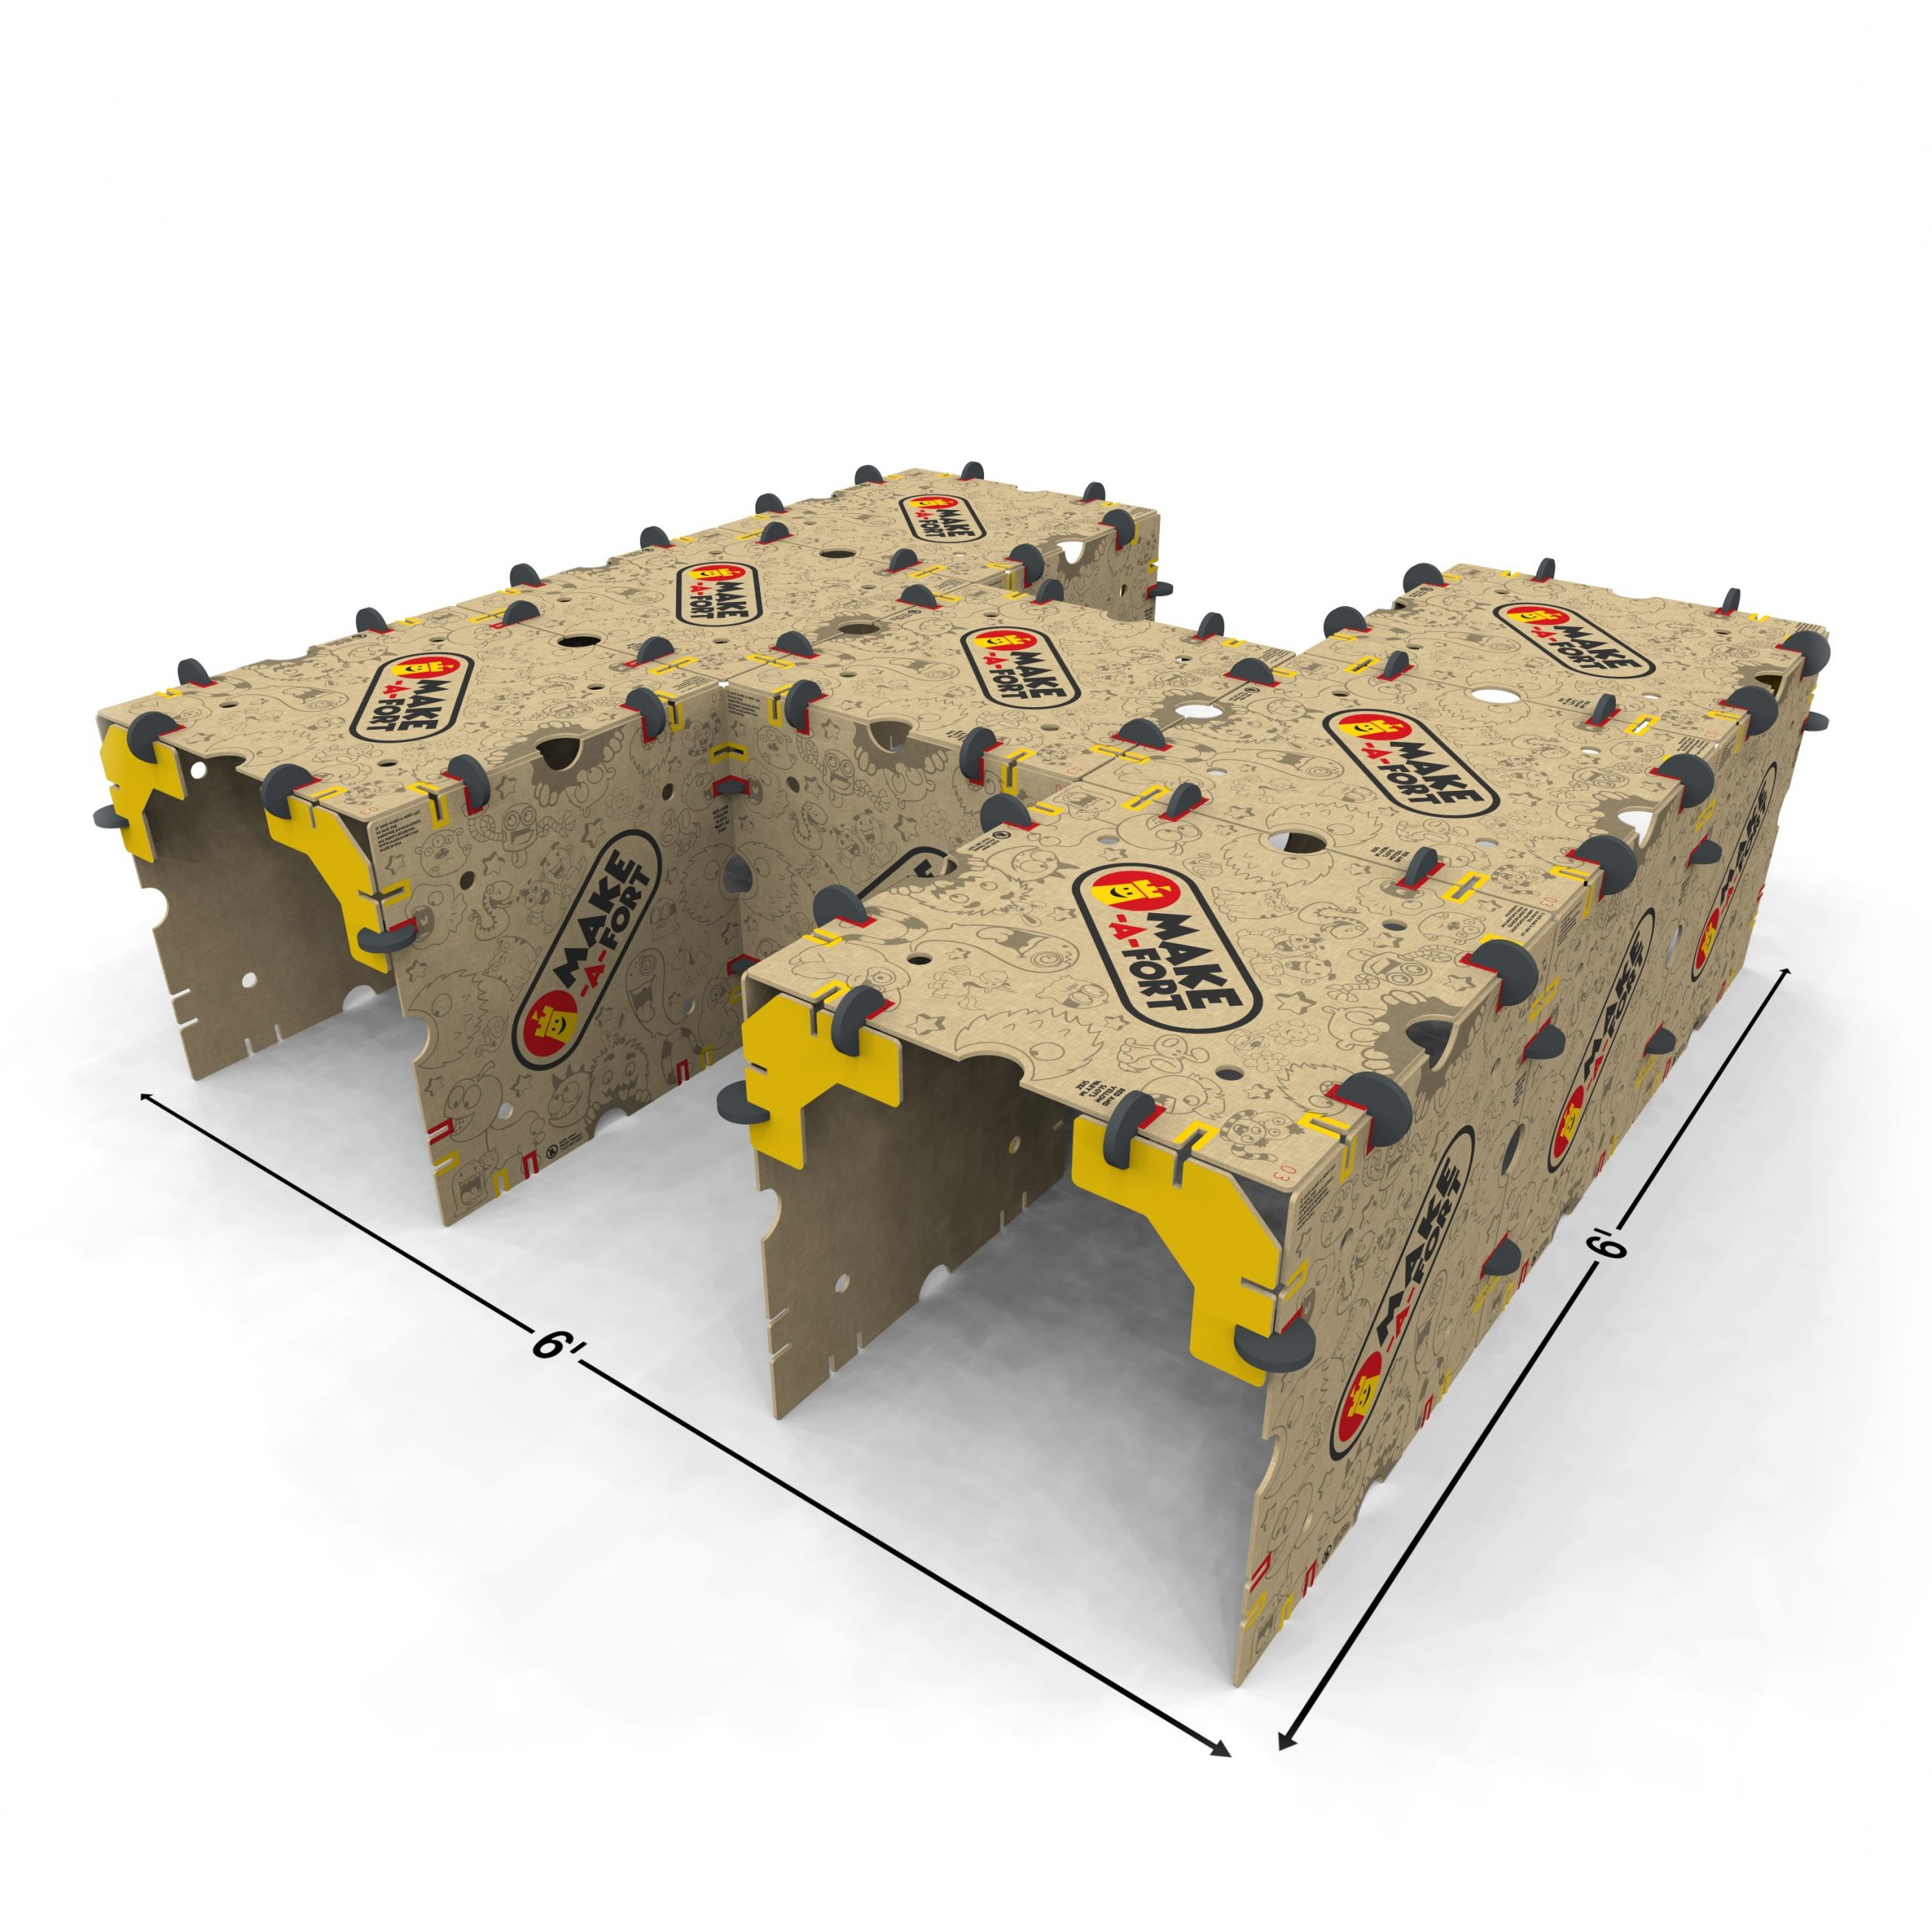 An h-tunnel built with Make-A-Fort Build Kits